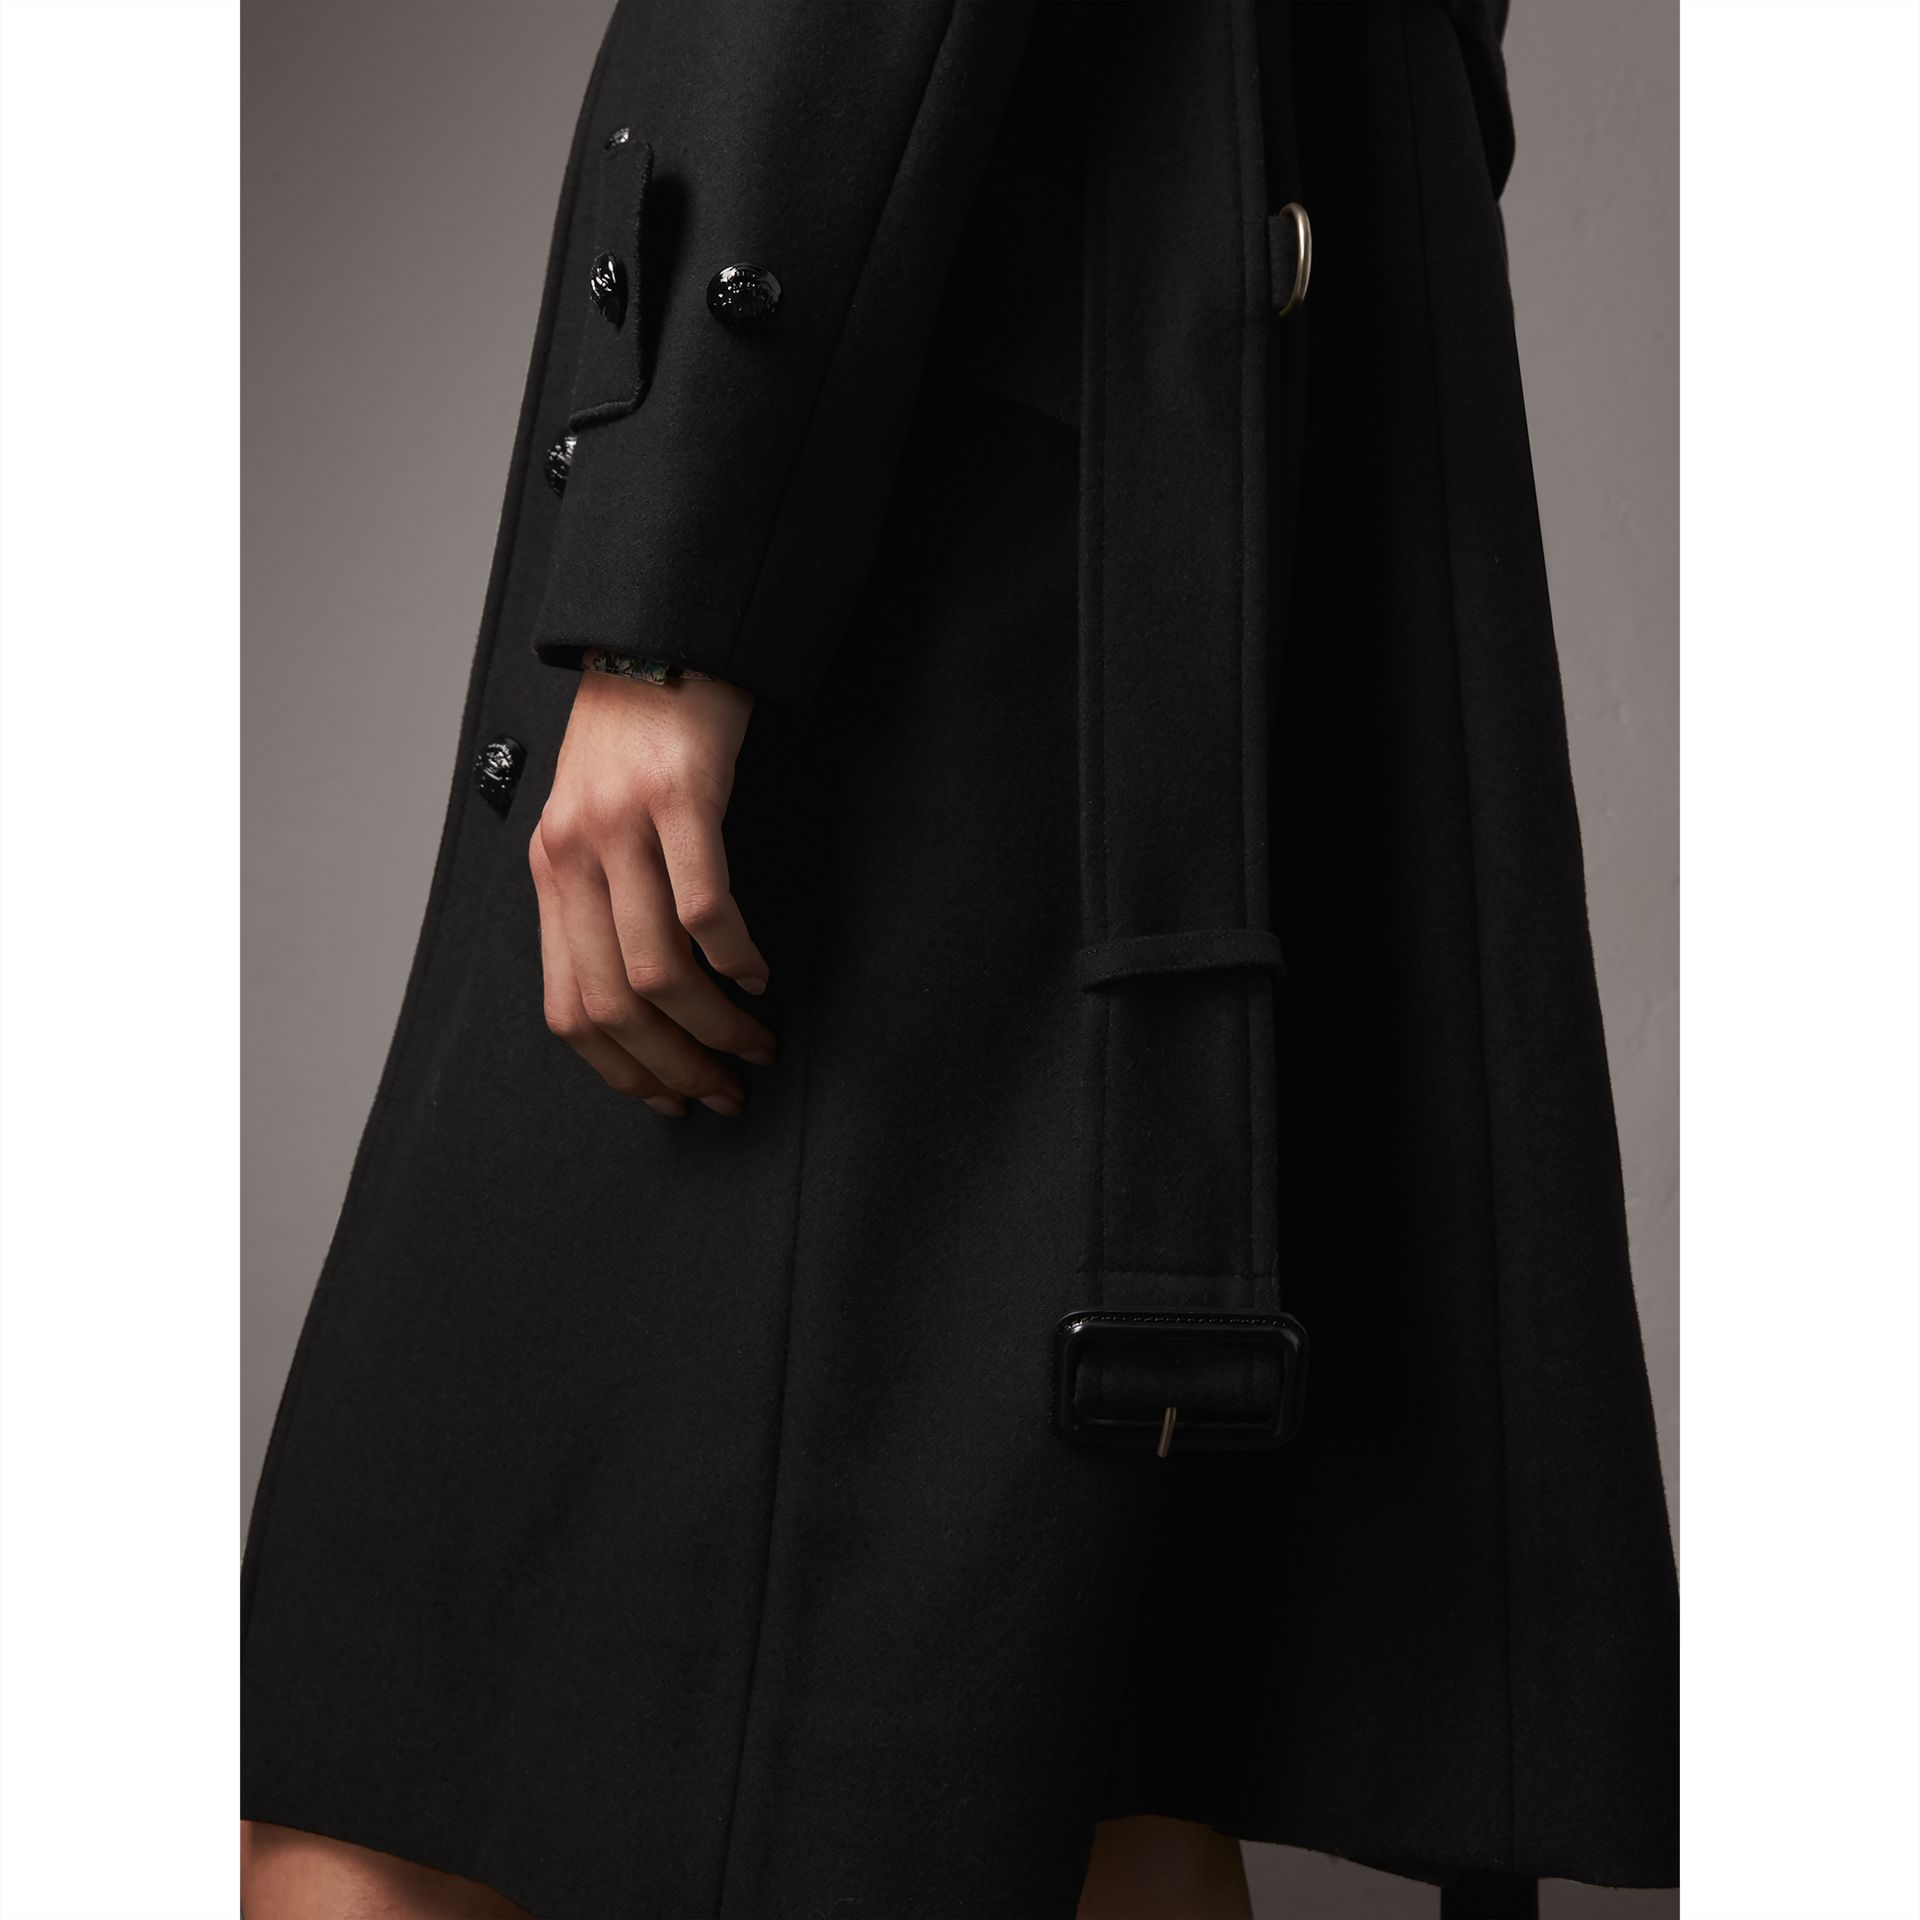 Hooded Wool Blend Coat with Detachable Fur Trim in Black - Women | Burberry - gallery image 1